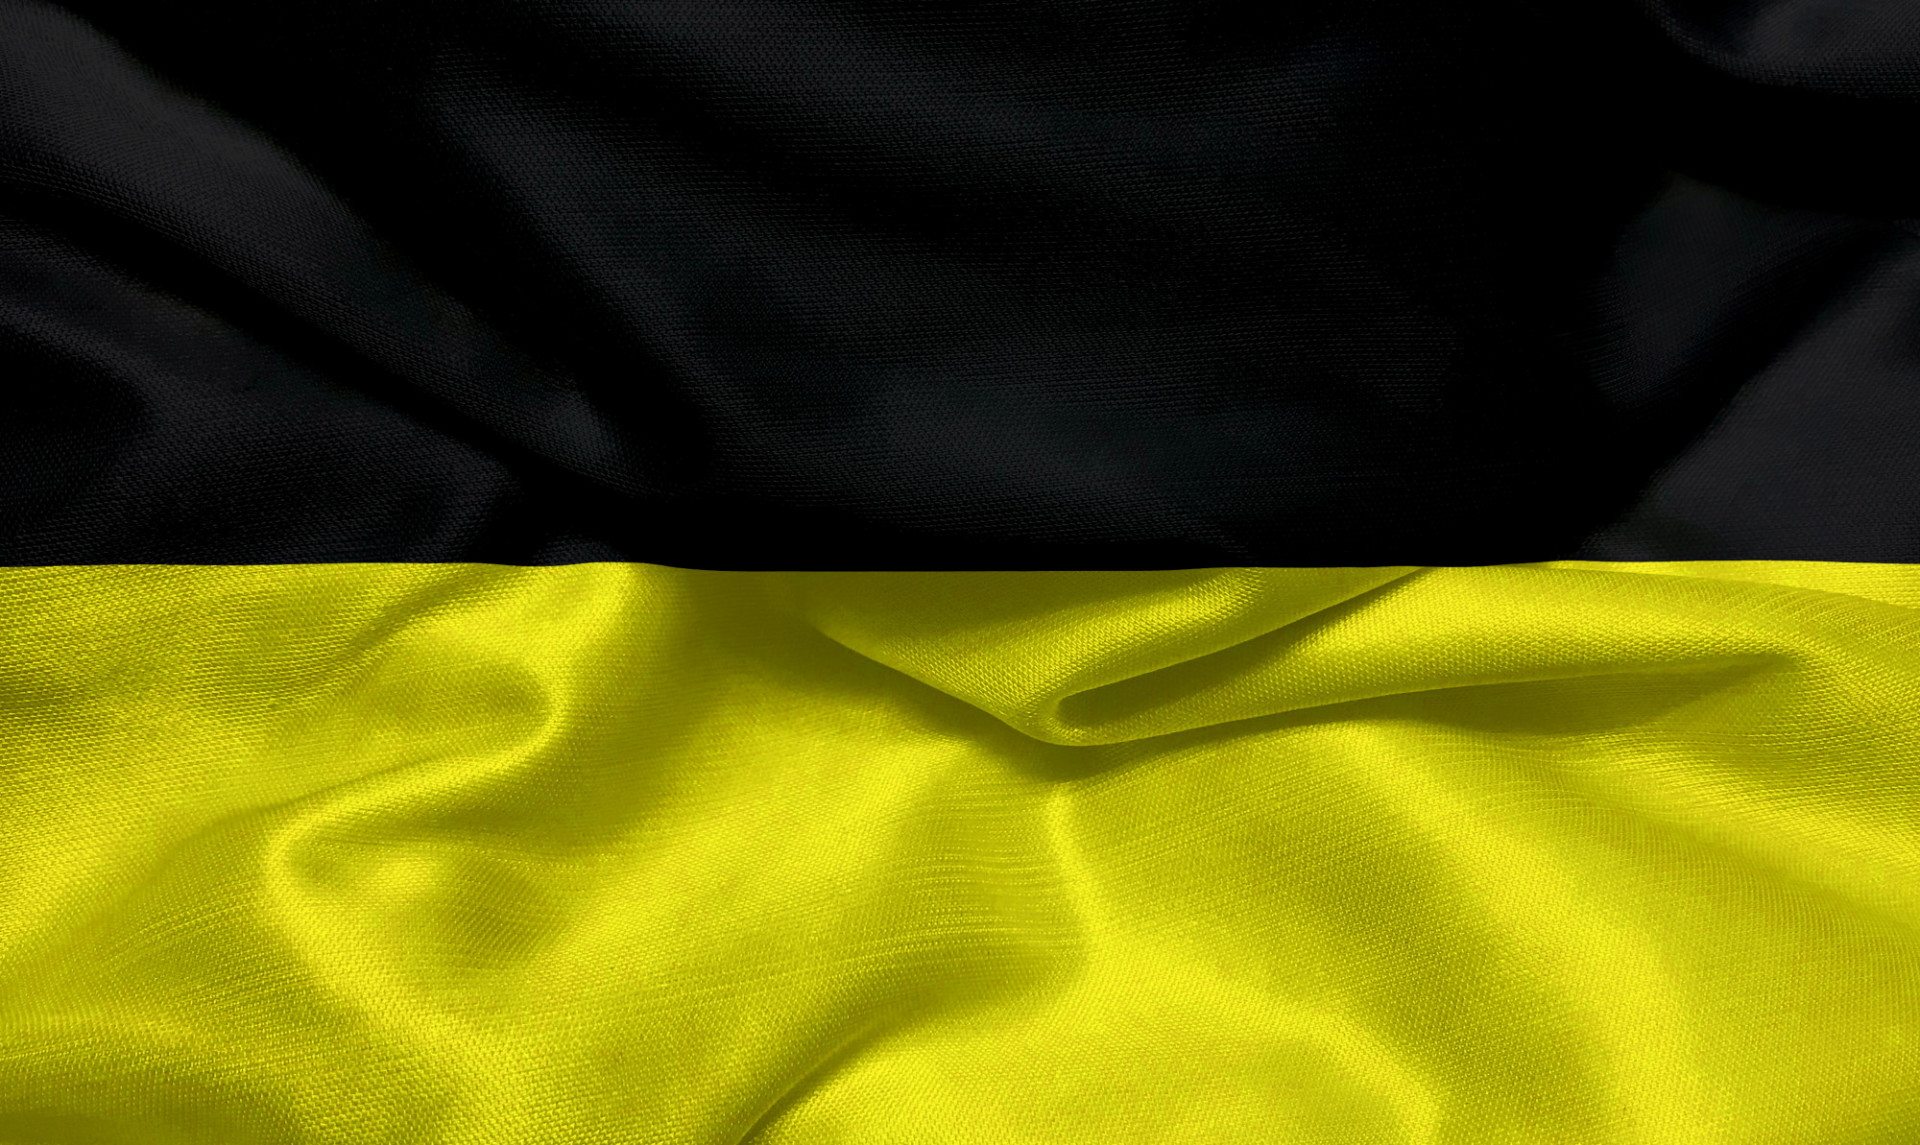 Flag of the city of Aachen in North Rhine-Westphalia